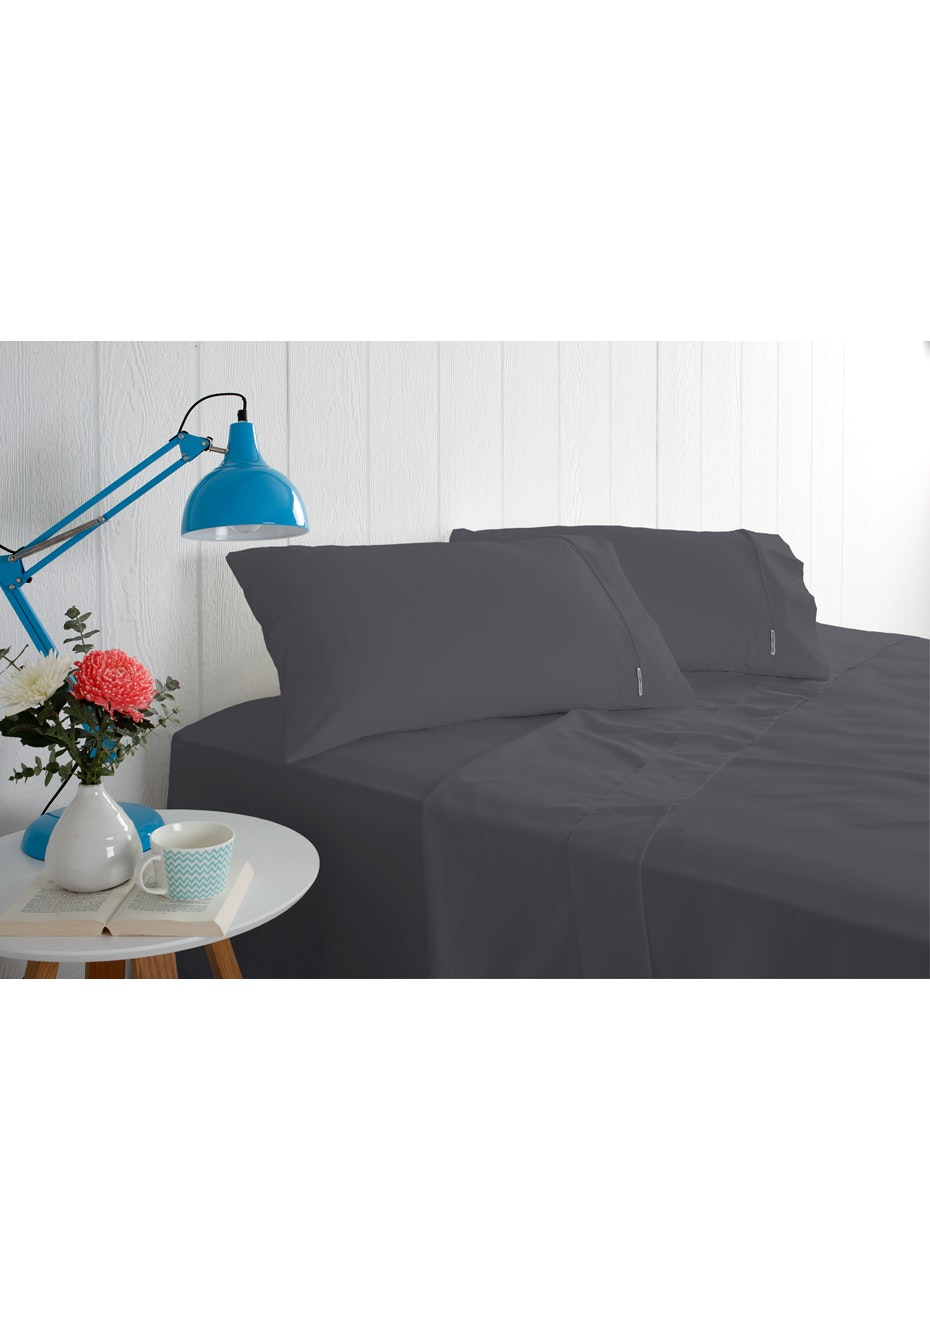 Odyssey Living 1000 Thread Count – Cotton Rich Sheet Sets - Charcoal - Double Bed